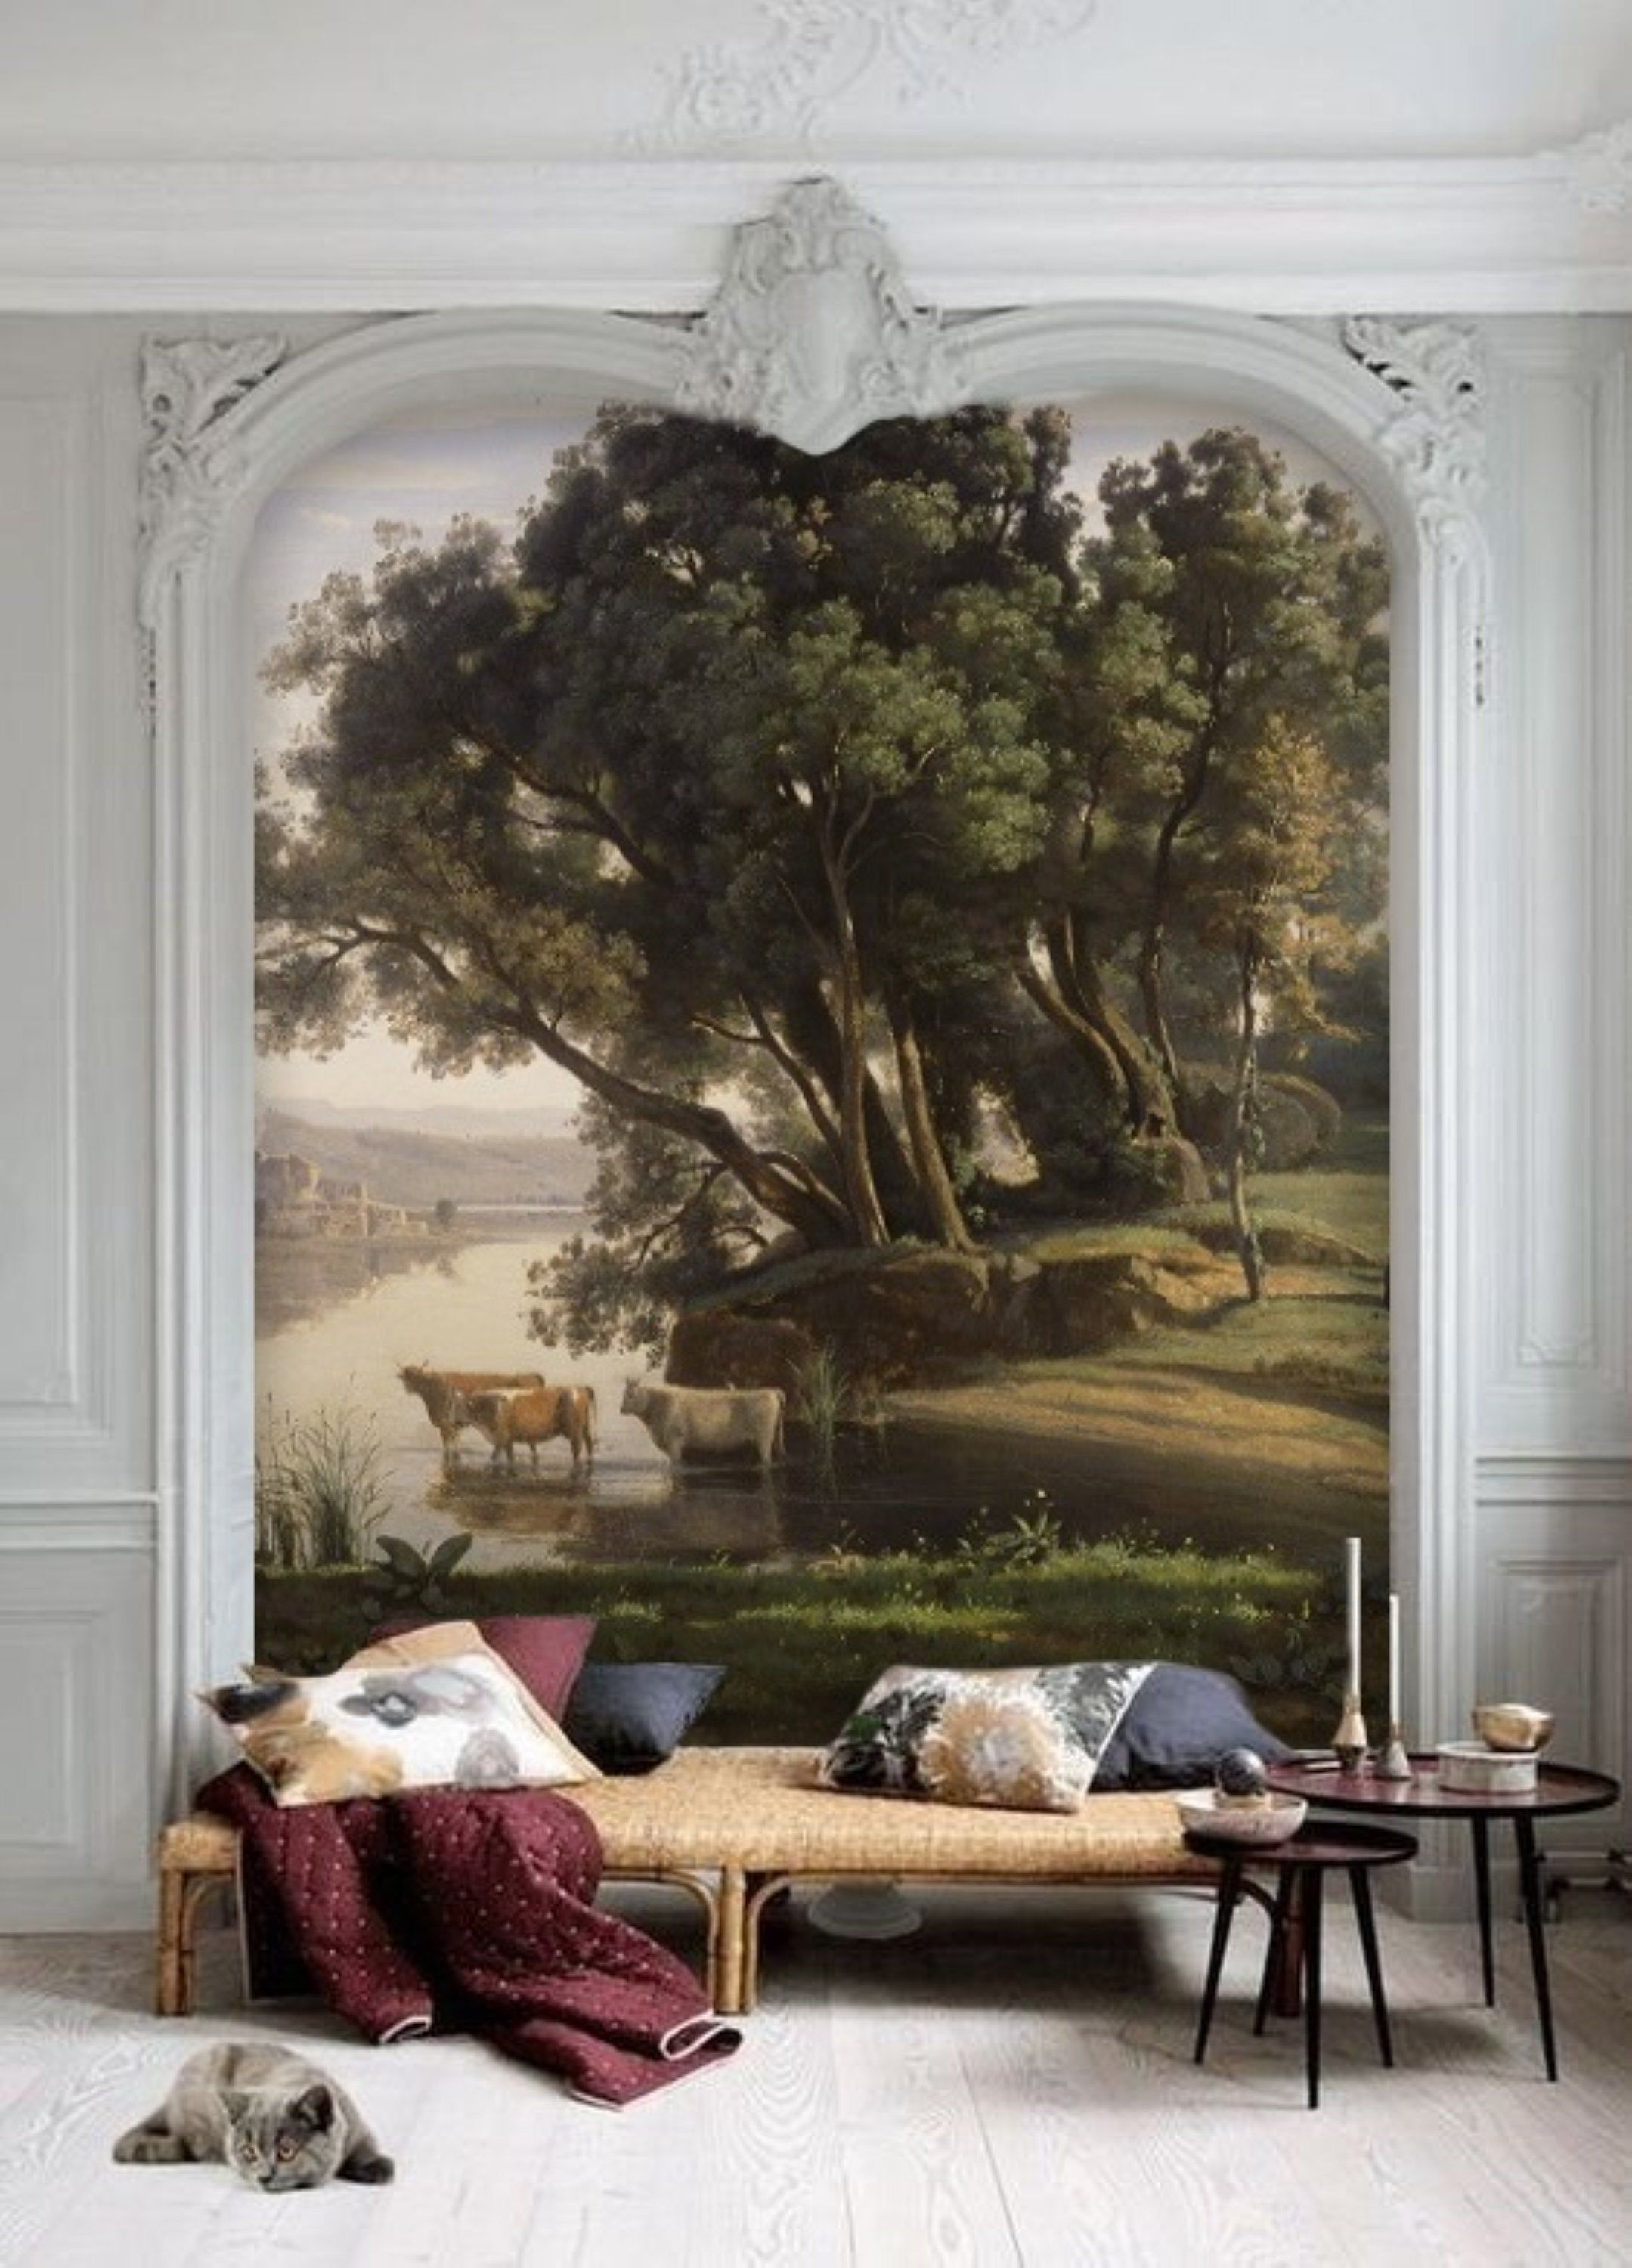 River Landscape Oil Painting Mural Wallpaper Peel And Stick Vintage Still Life Painting Removable Wallpaper Antique Victorian Painting 181 Mural Wallpaper Oil Painting Landscape Mural